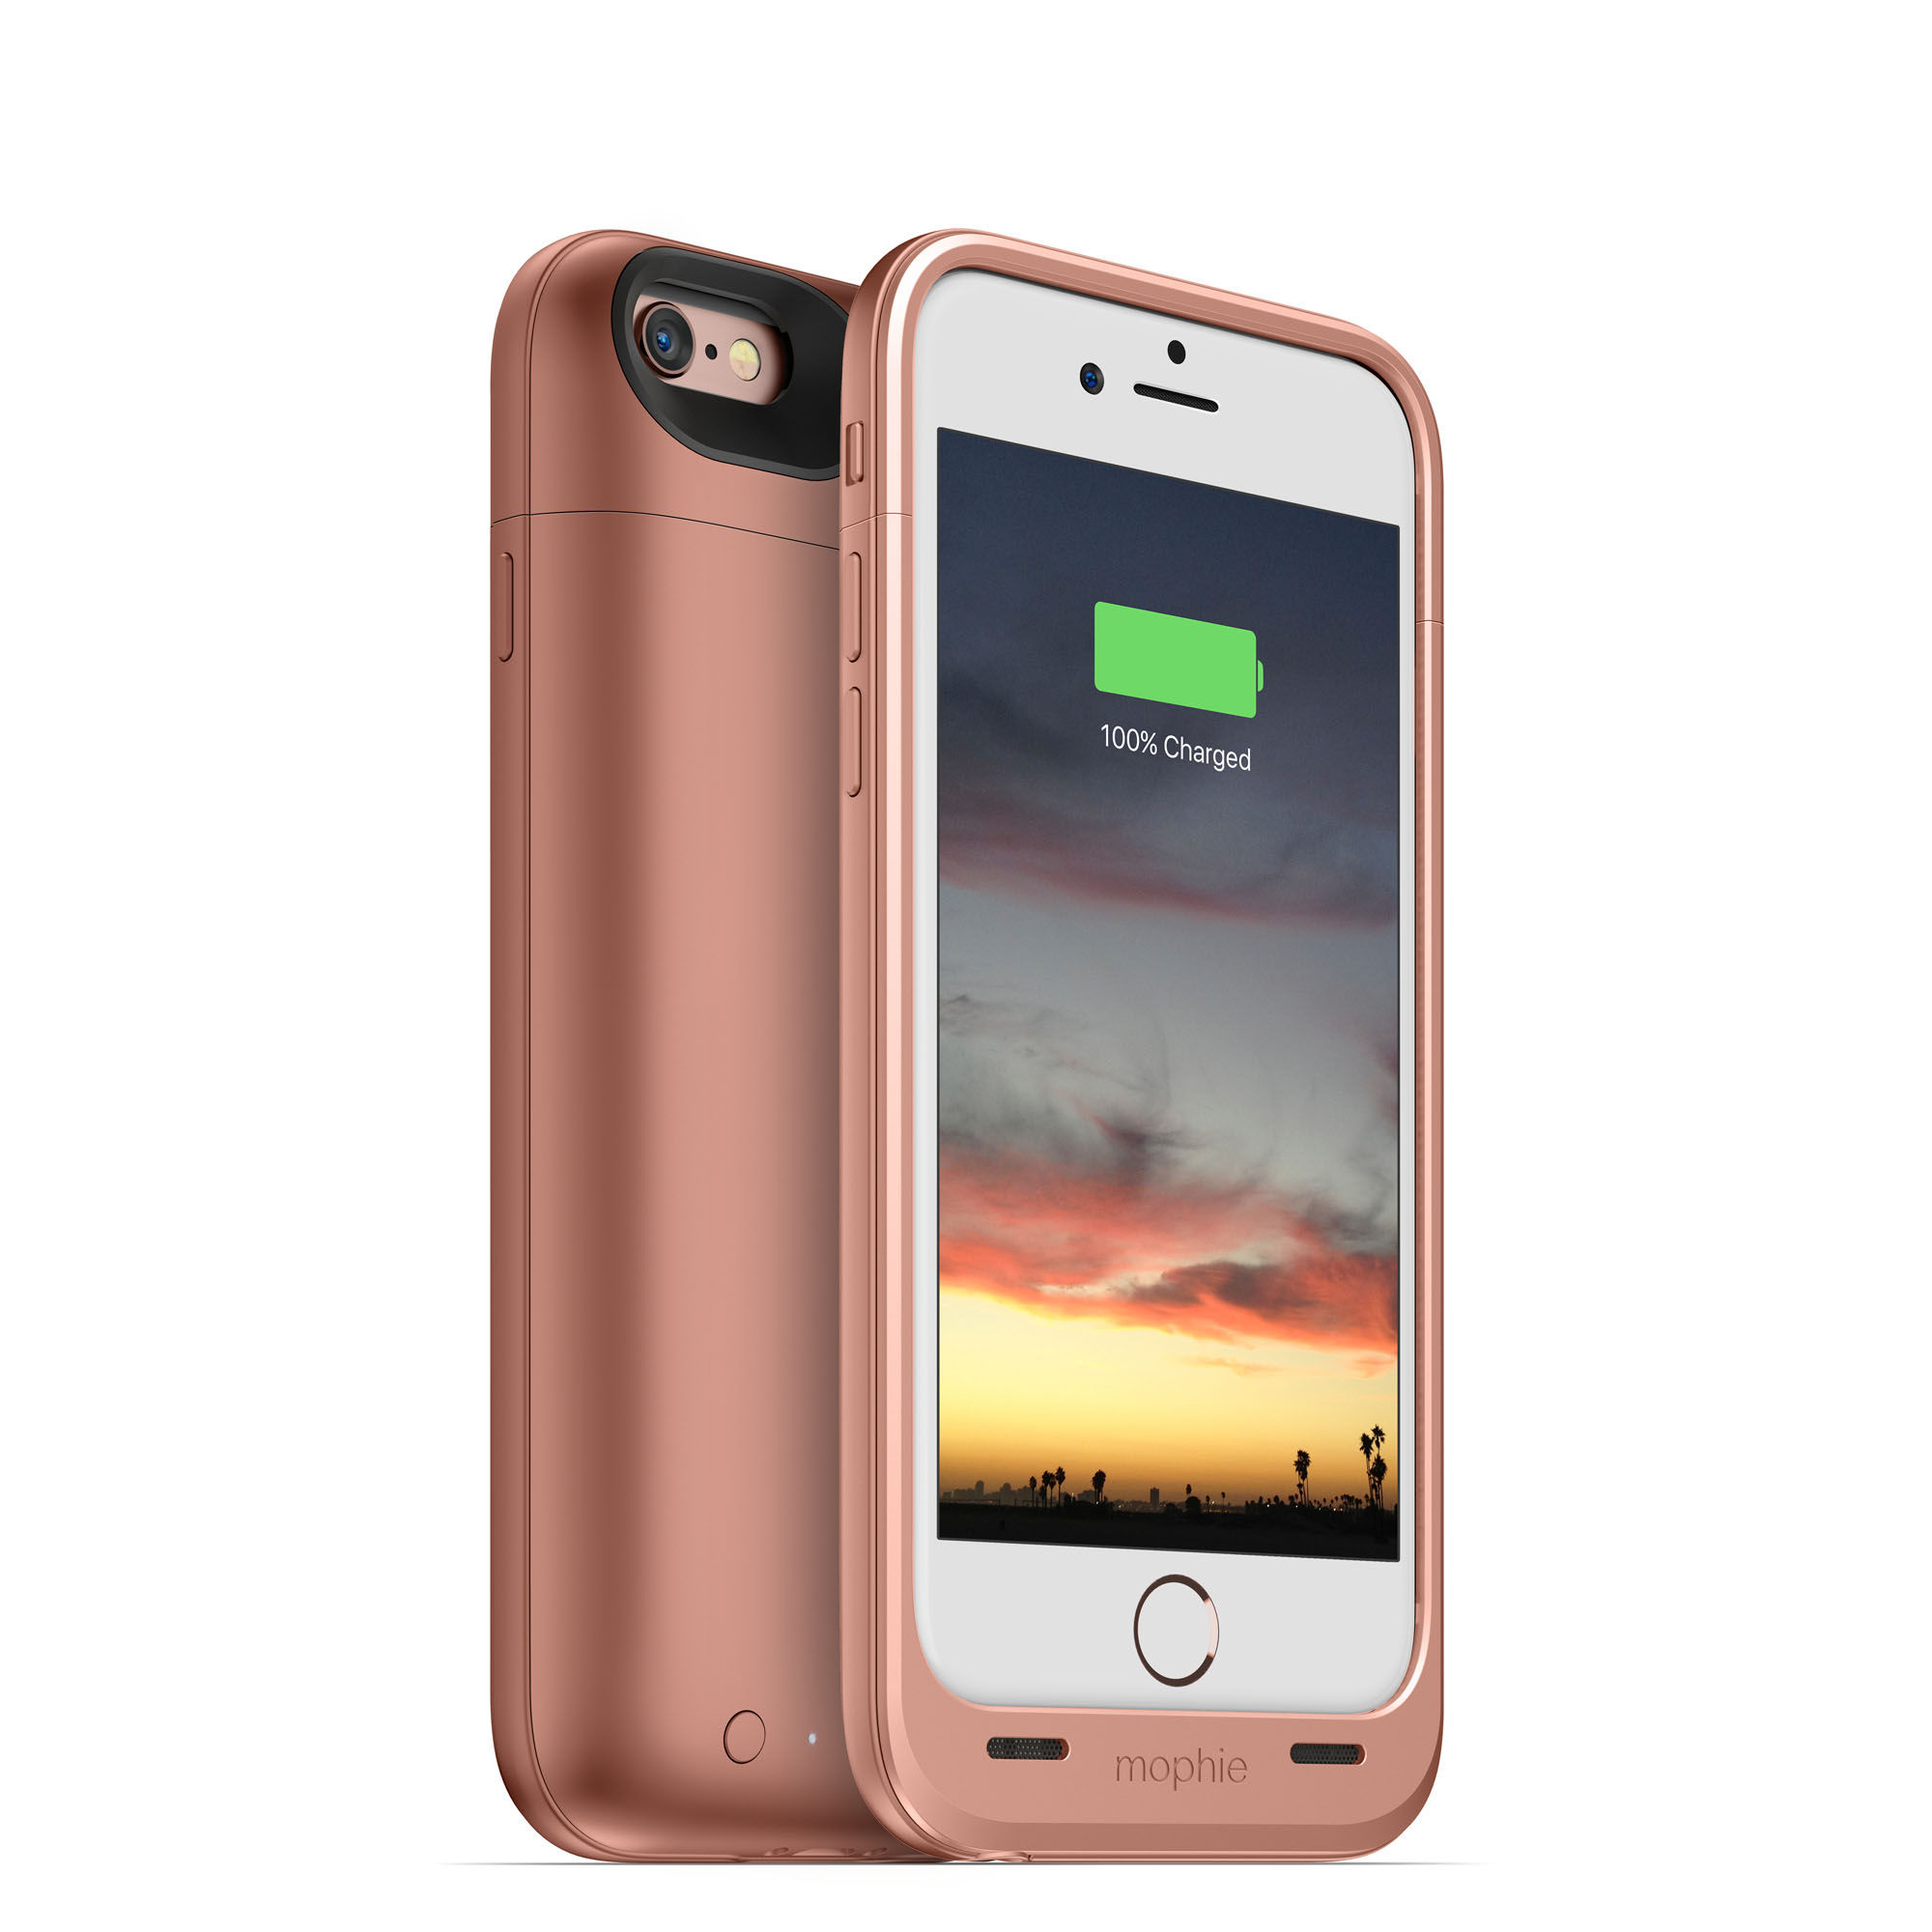 mophie juice pack air for the Apple iPhone 6/6s